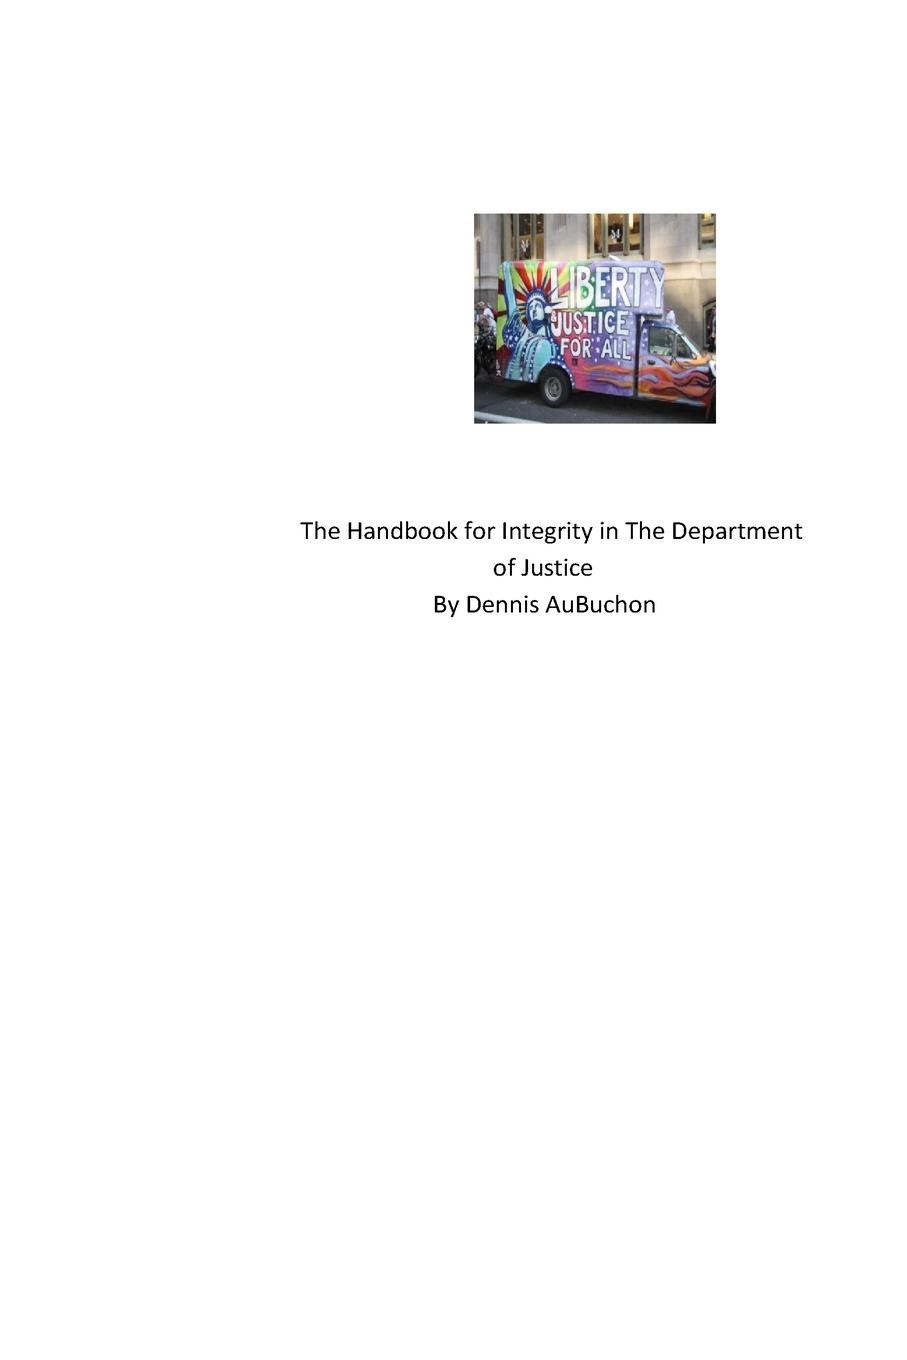 Dennis AuBuchon The Handbook for Integrity in The Department of Justice u s department of justice investigation of the baltimore city police department